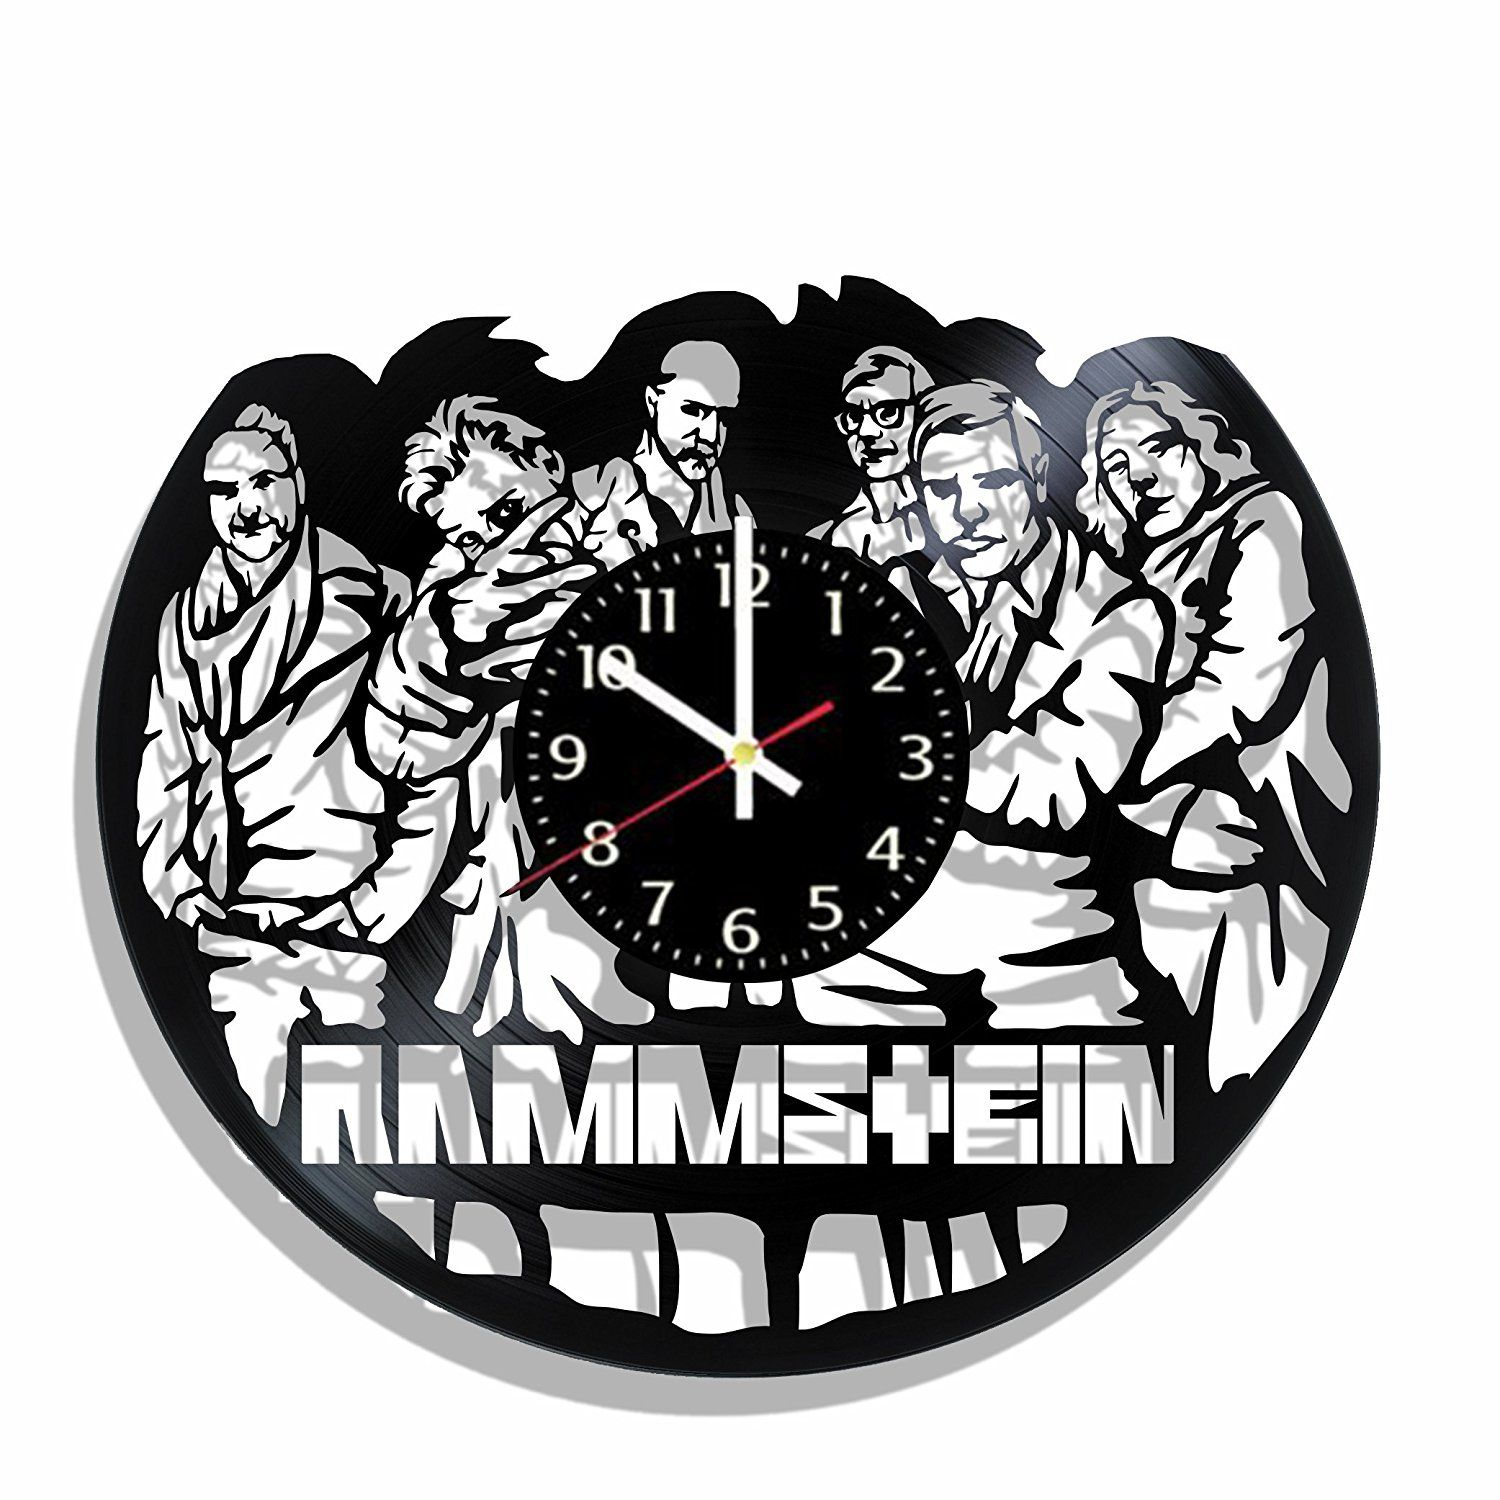 Wall Clock Rammstein Made From Real Vinyl Record Rammstein Decal Rammstein Wall Poster You Can Find More Details By Visiti Clock Wall Clock Vinyl Records